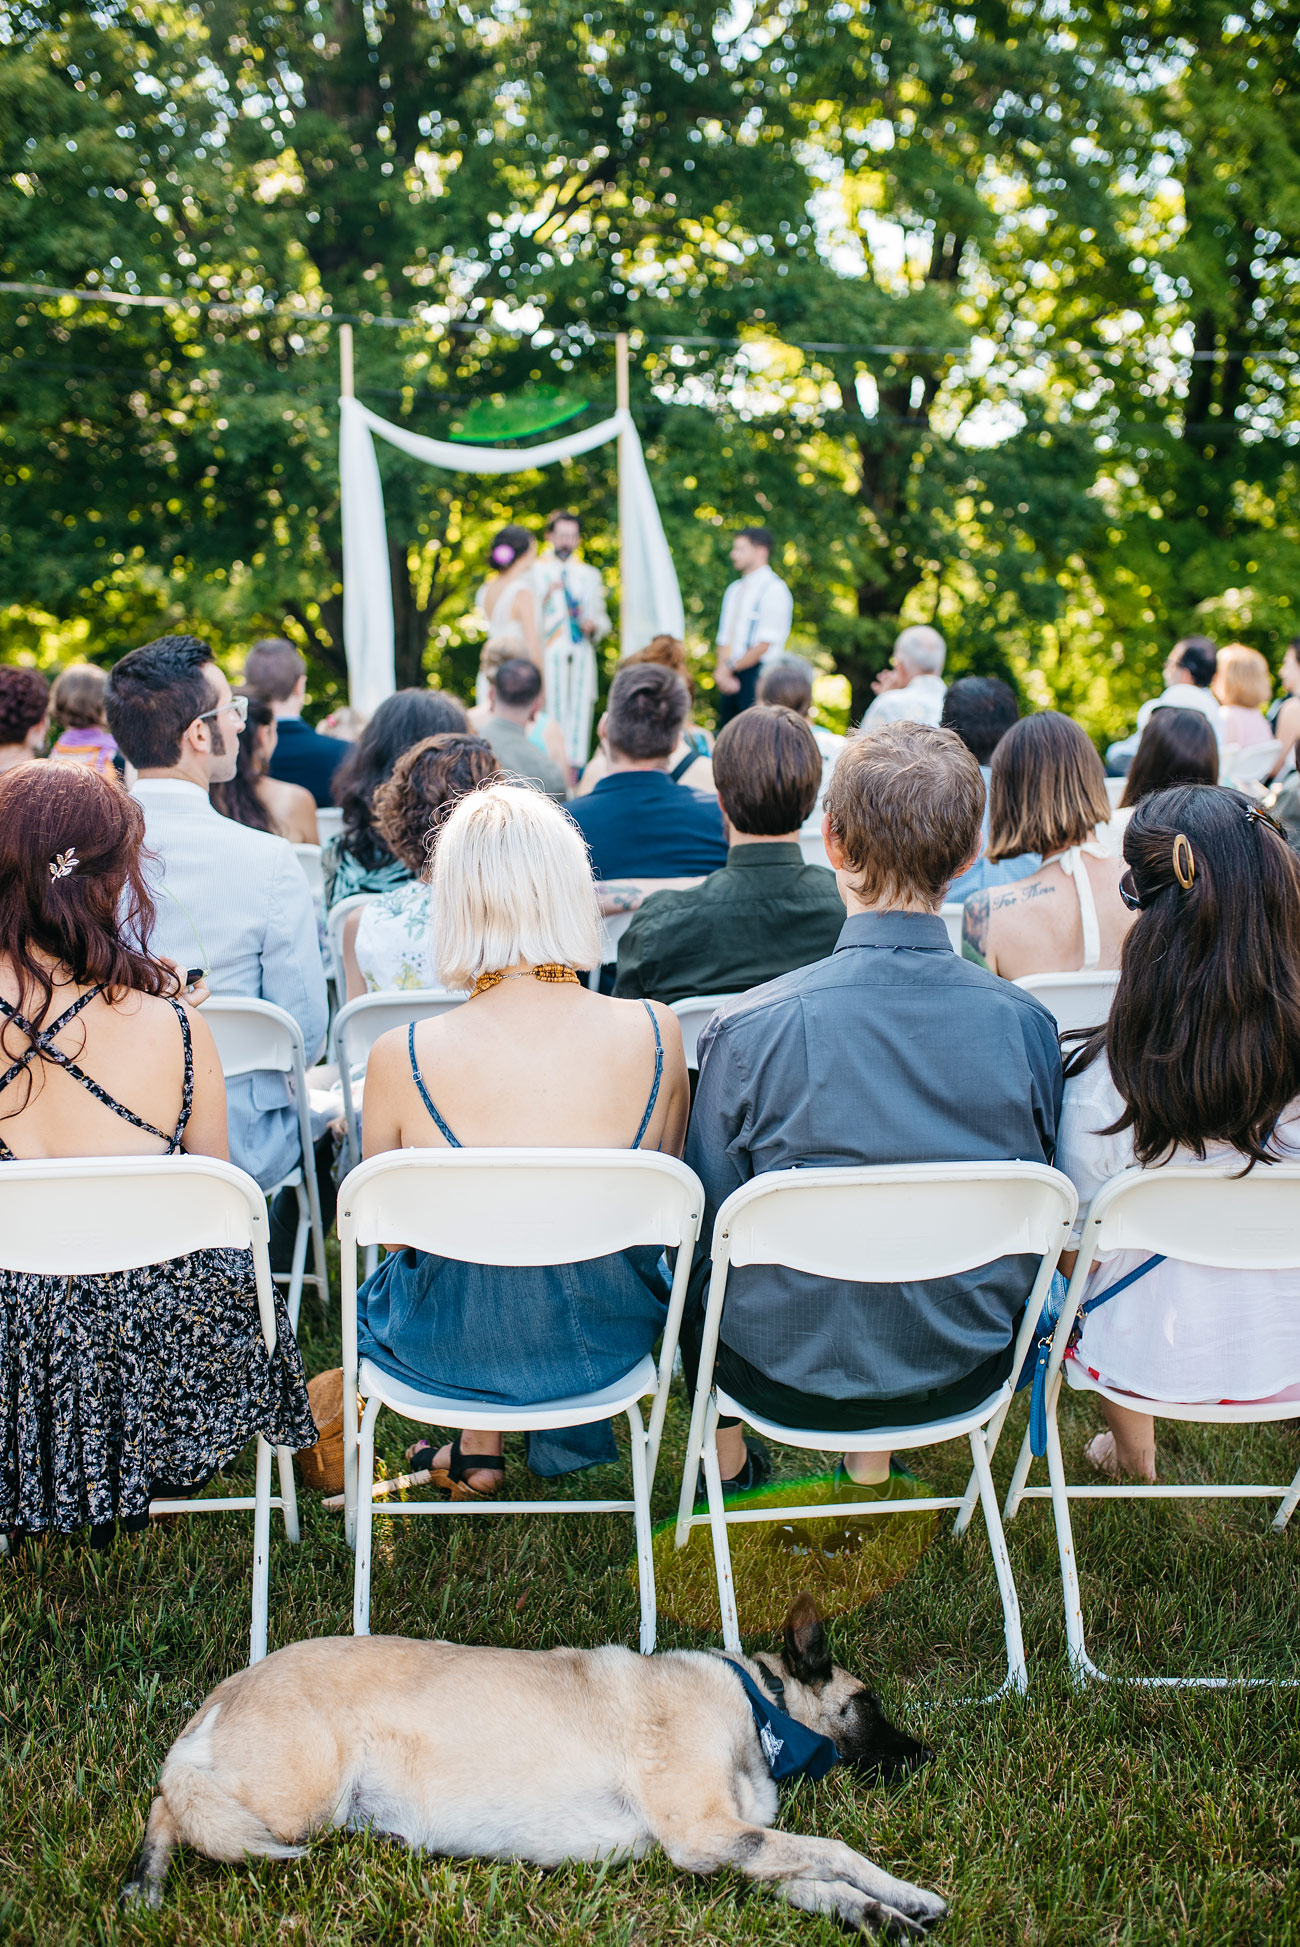 adorable dog sleeping during the wedding ceremony at a lovely new england diy backyard wedding